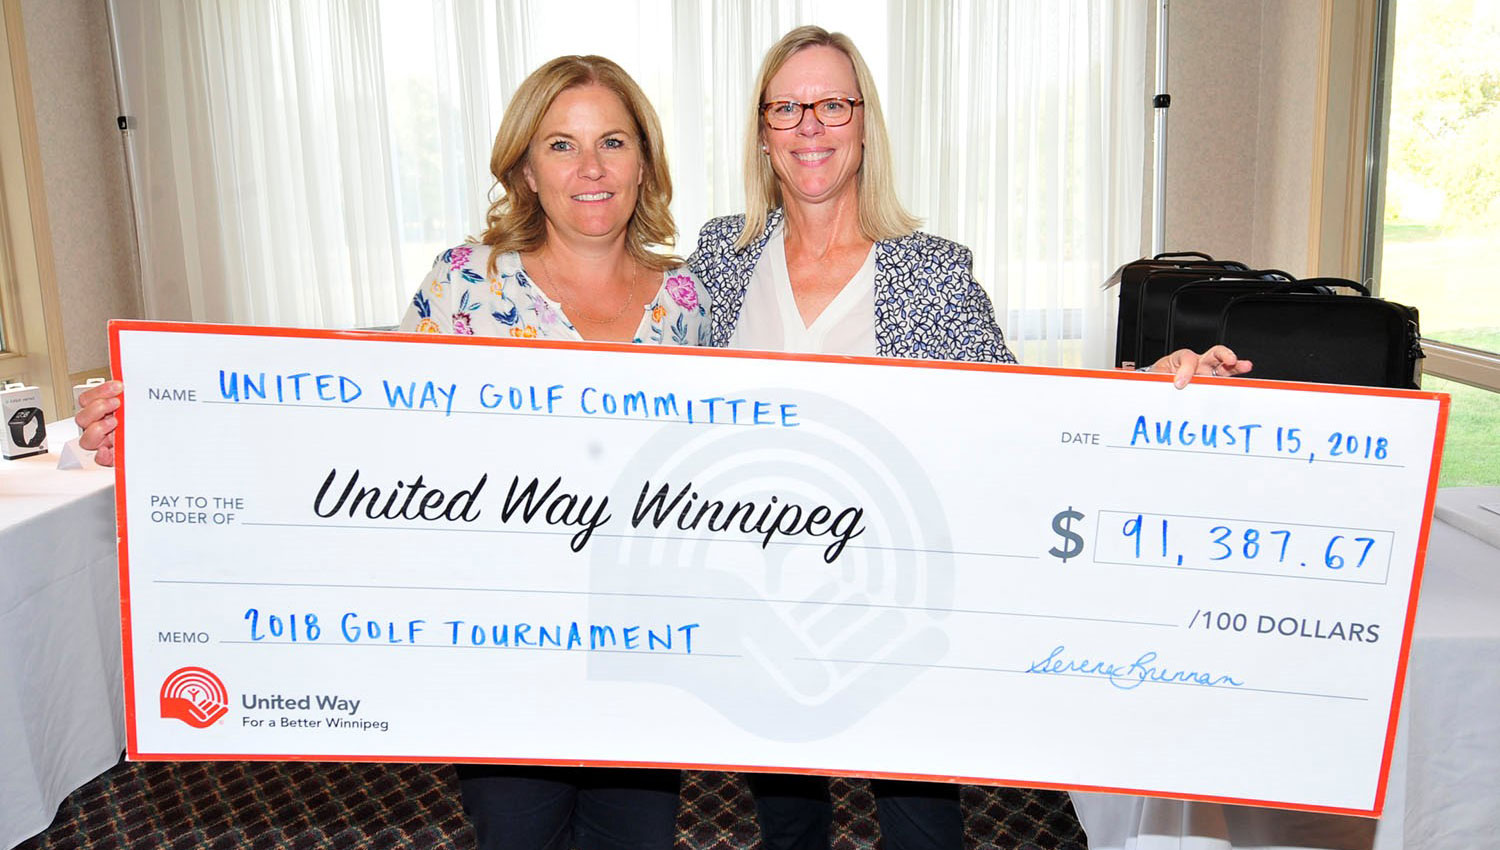 Golf Committee Chair Serena Brennan presents United Way Winnipeg Board Chair Joan Hardy with a cheque for $91,387.67